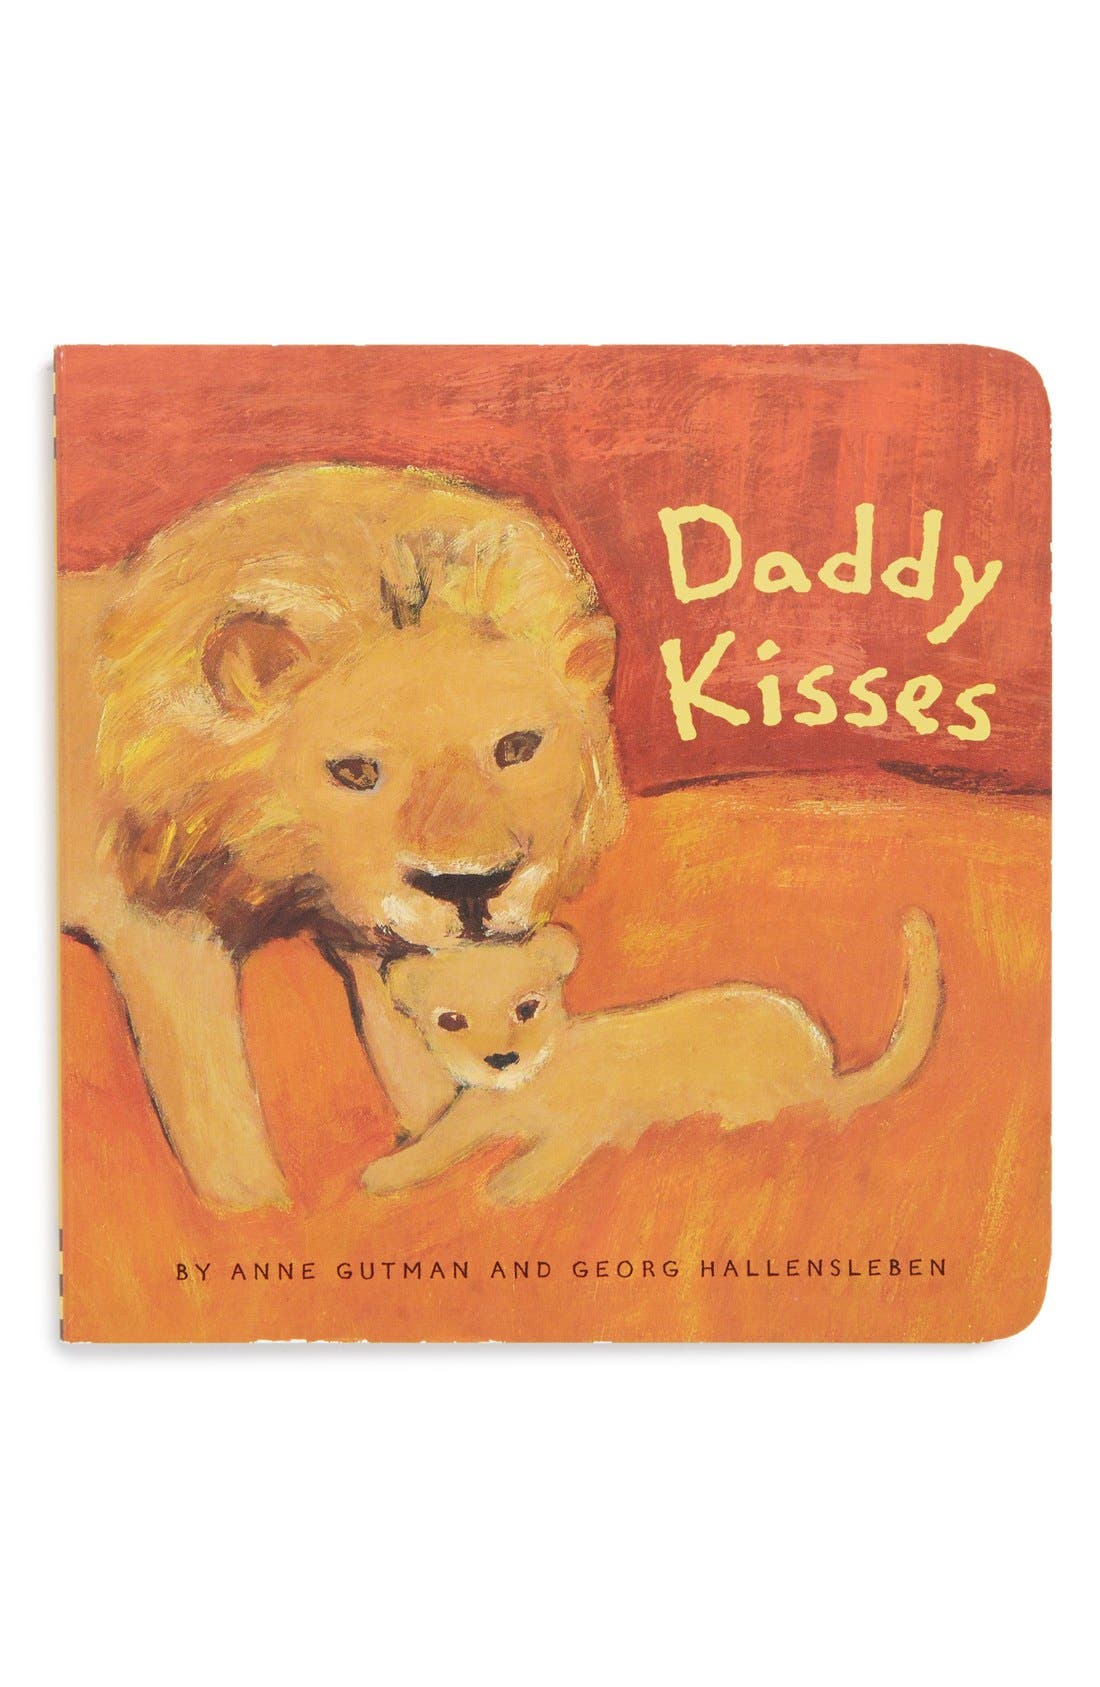 Alternate Image 1 Selected - 'Daddy Kisses' Board Book